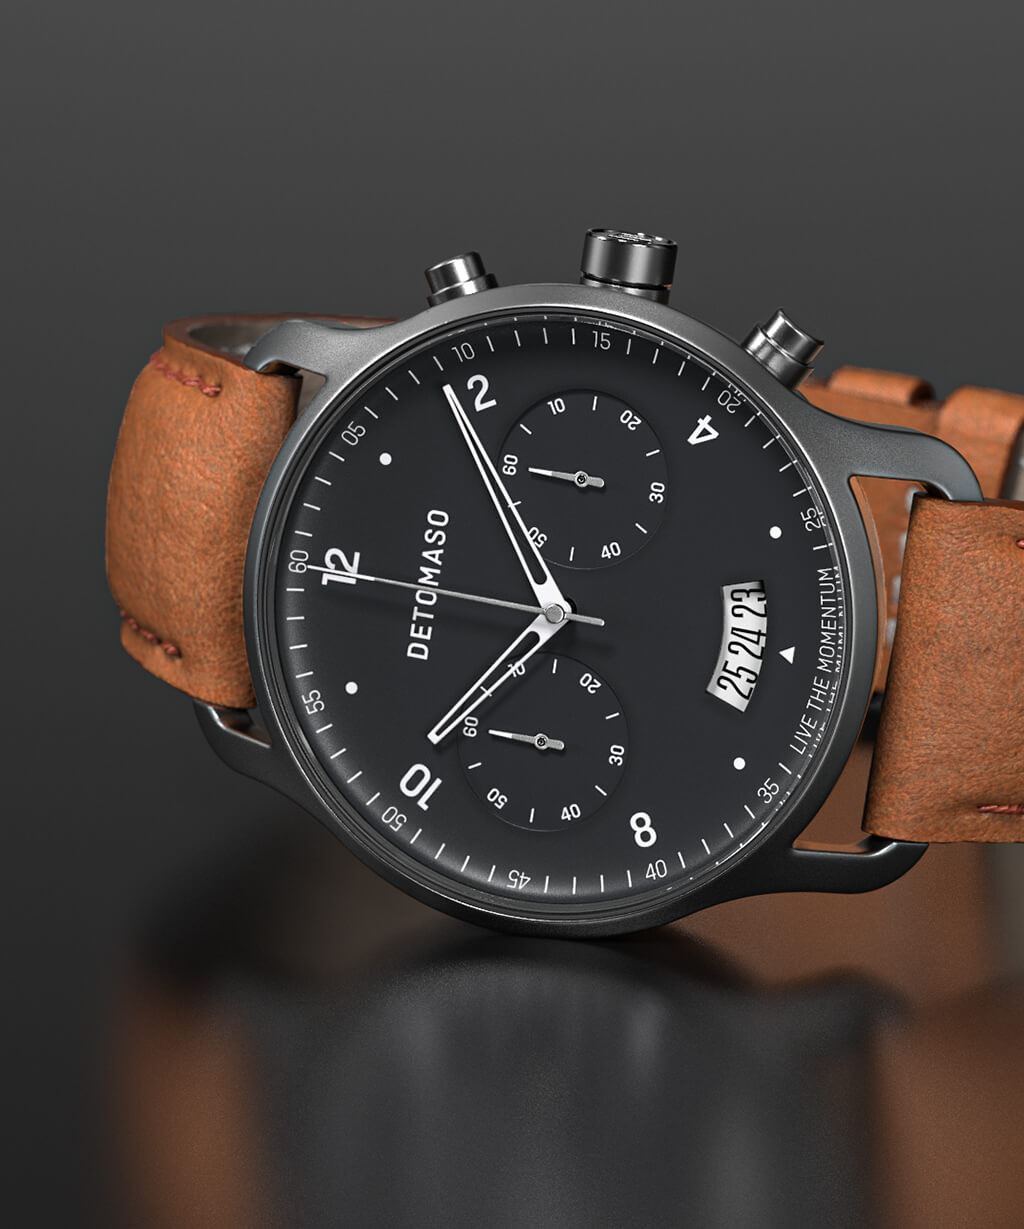 SORPASSO CHRONOGRAPH GREY - LEATHER STRAP BROWN